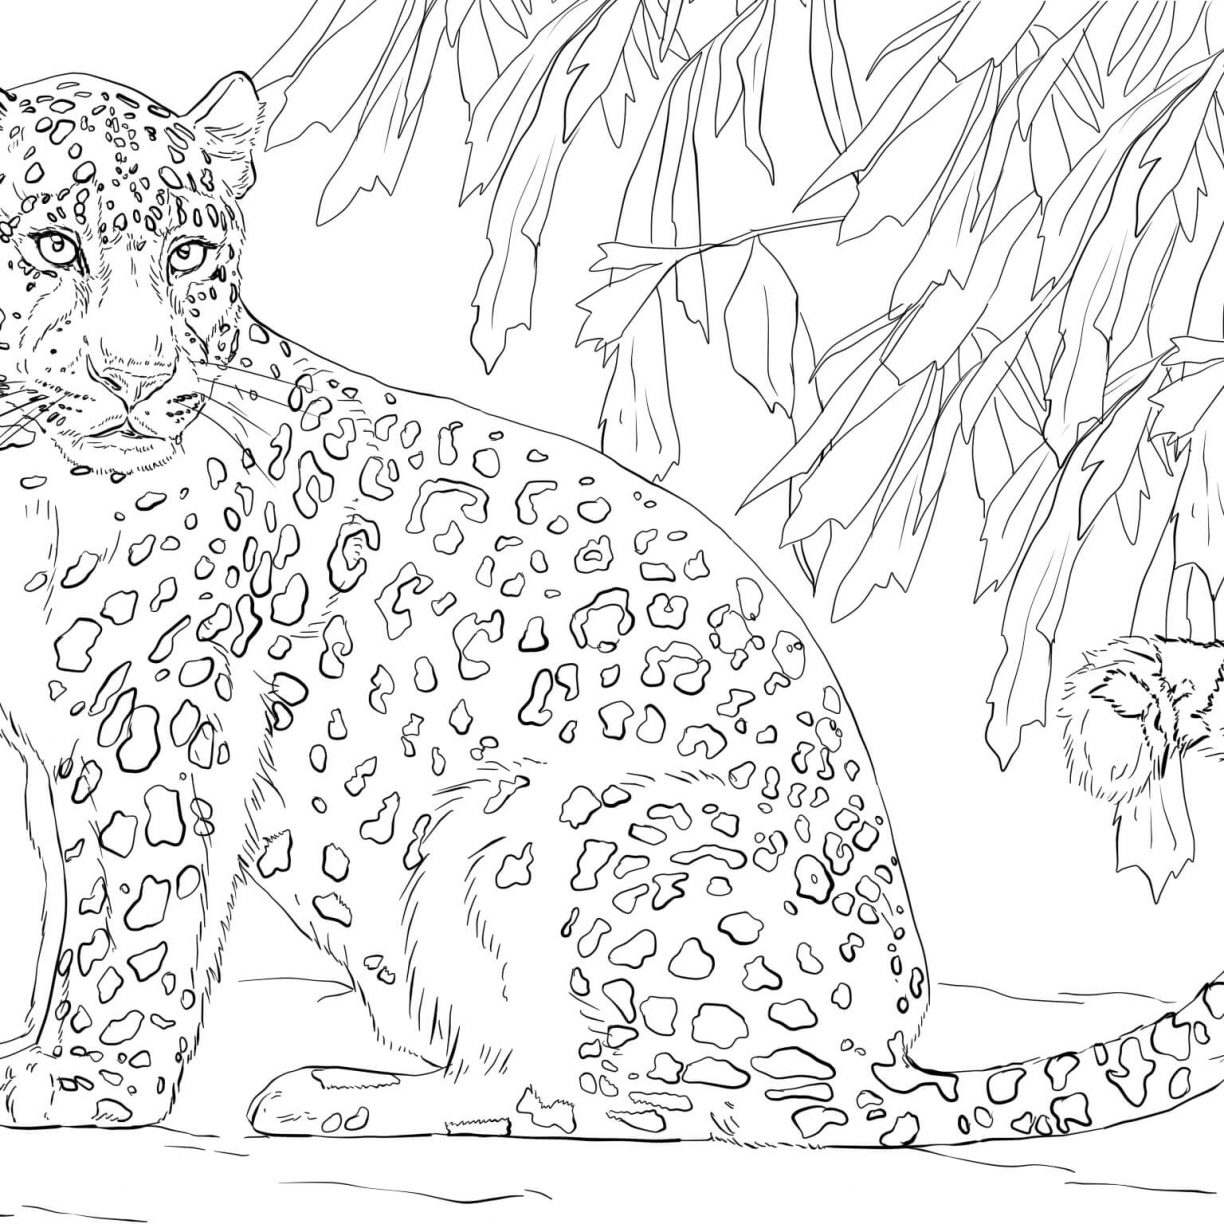 1224x1224 Snow Leopards Coloring Pages Free Hotel To Transylvania Coloring